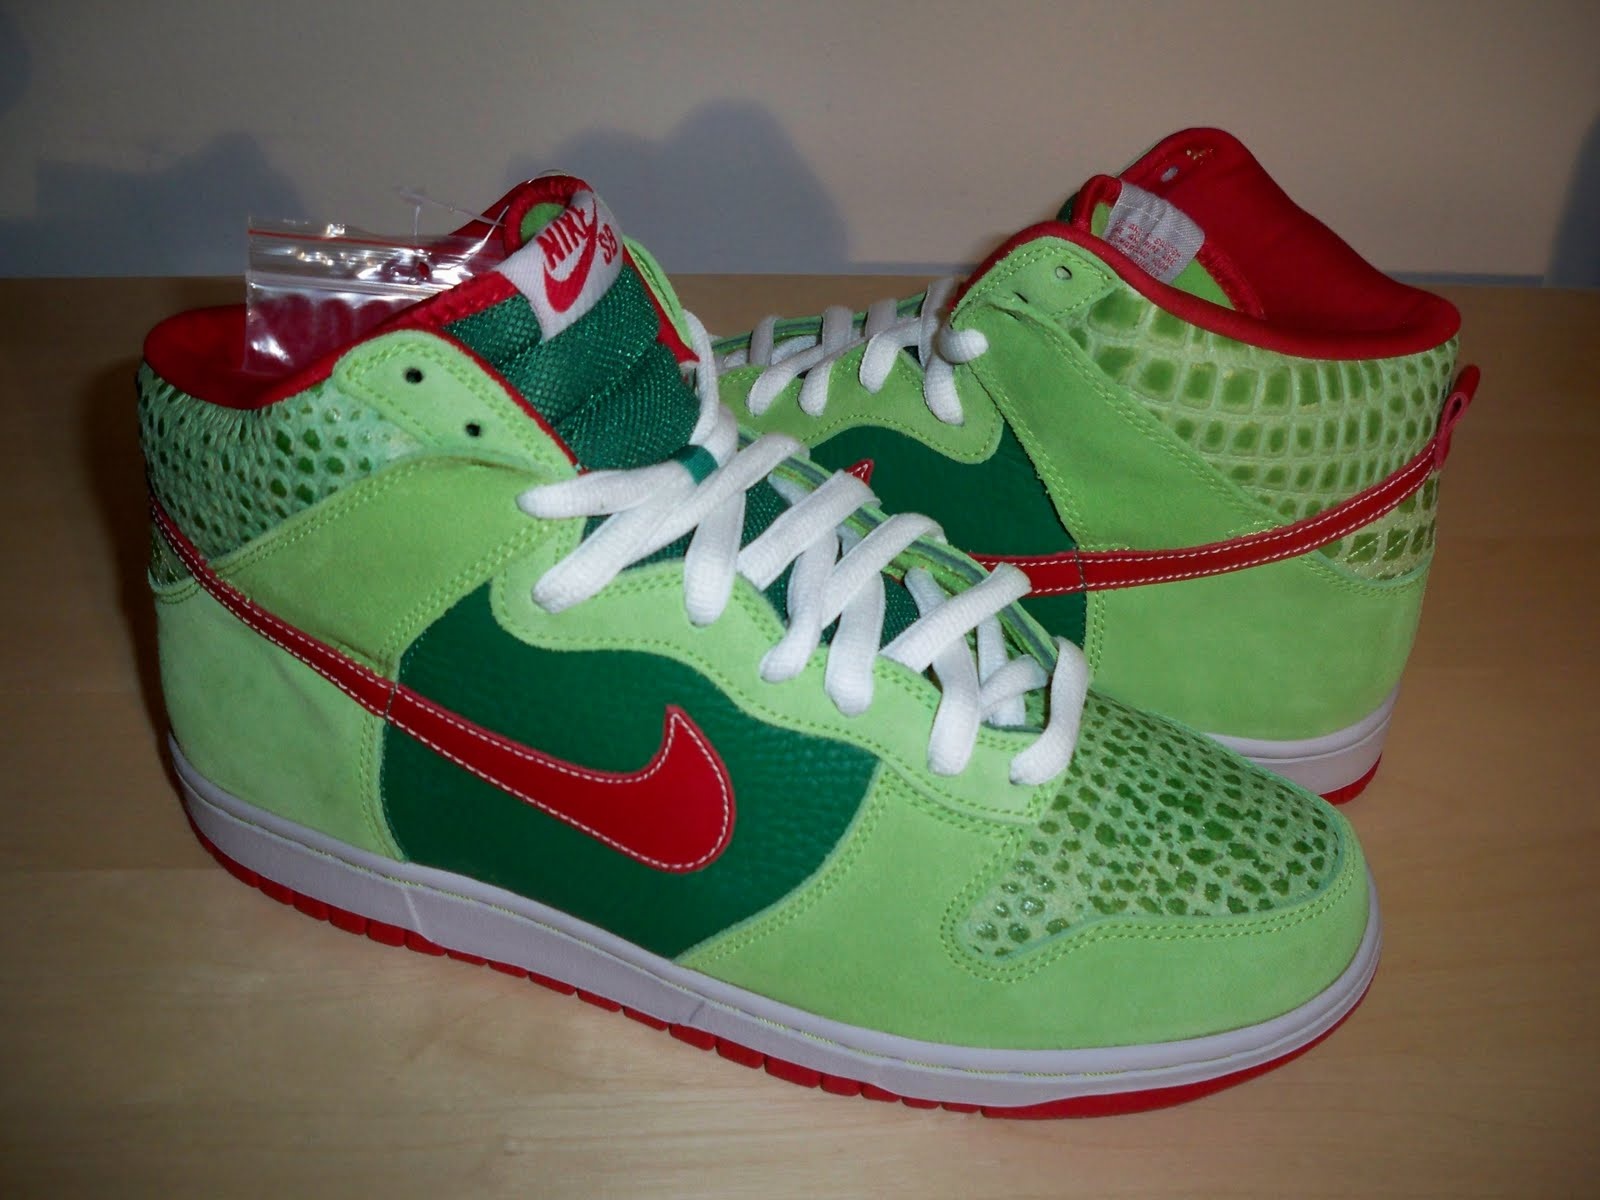 factory authentic 2bf03 16a97 SB Collection Nike Dunk High Pro SB